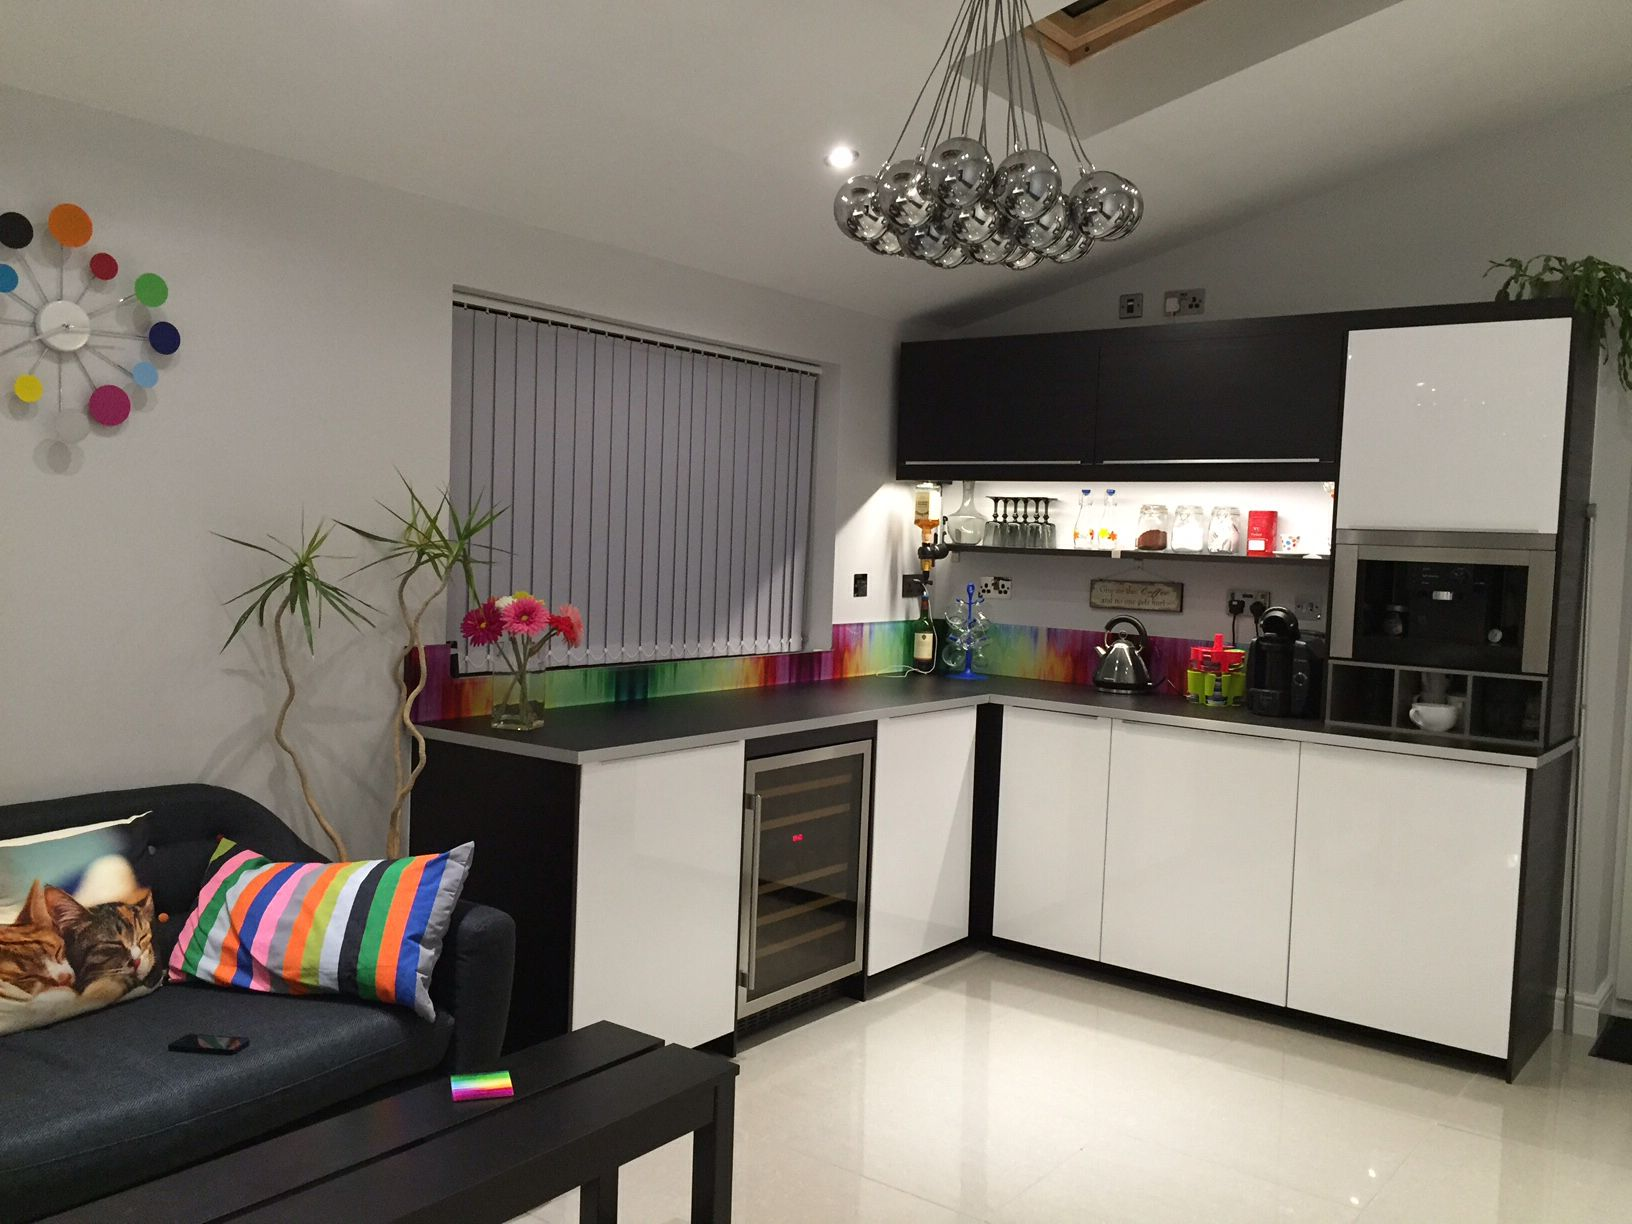 Breakfast area in extension adjacent to main kitchen multicoloured splashbacks with ikea ringhult high gloss white and tingsryd black kitchen polished porcelain light grey floor tiles with dulux polished dailygadgetfo Gallery